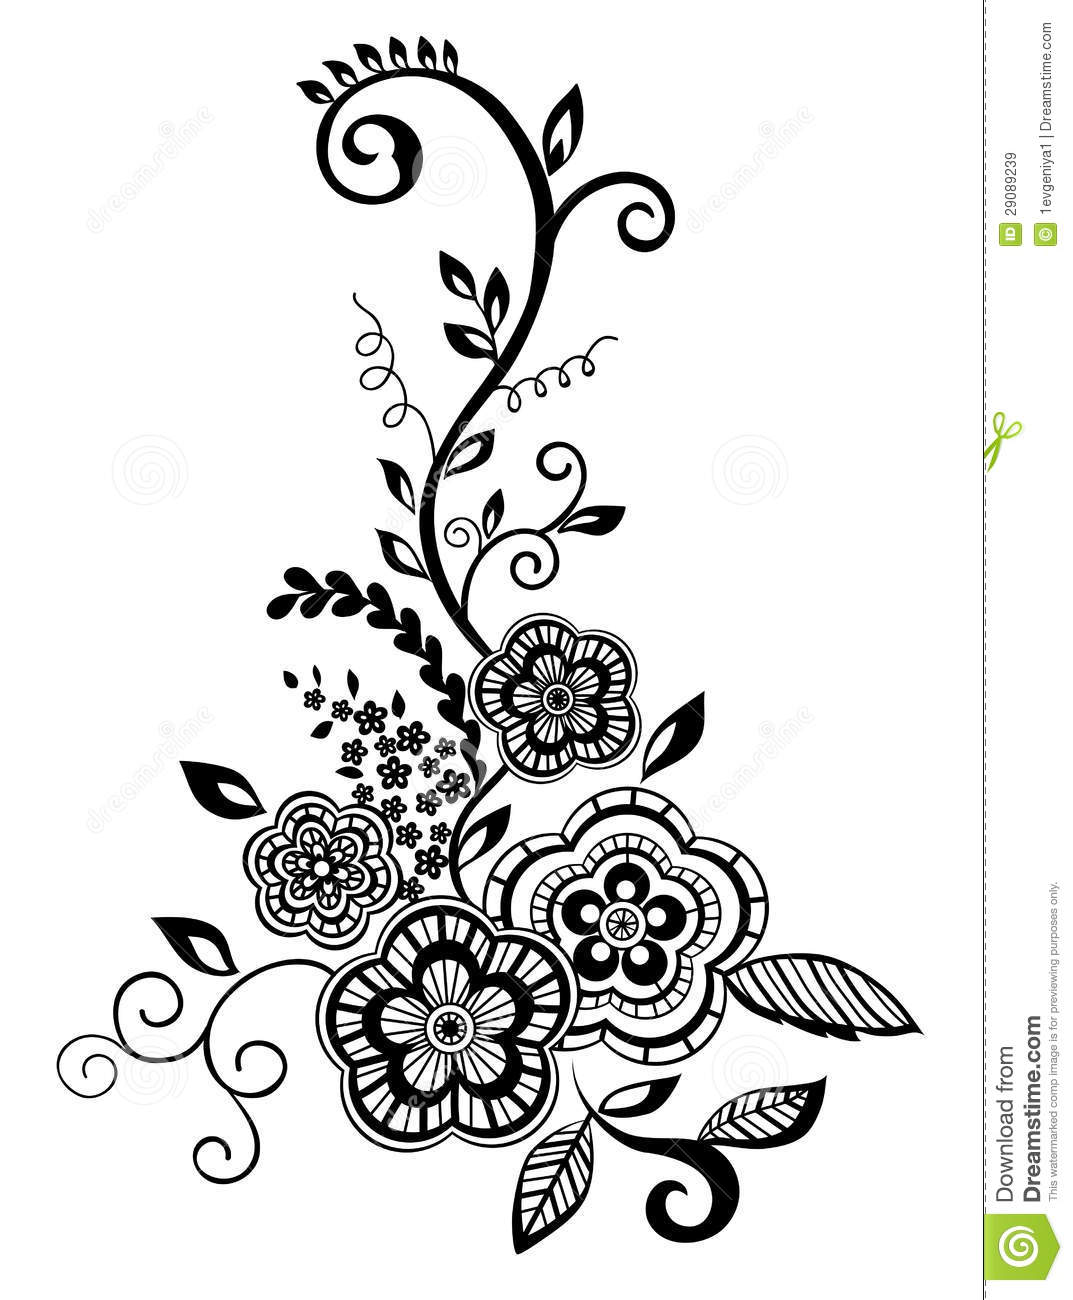 Beautiful floral element black and white flowers royalty - Flower black and white design ...